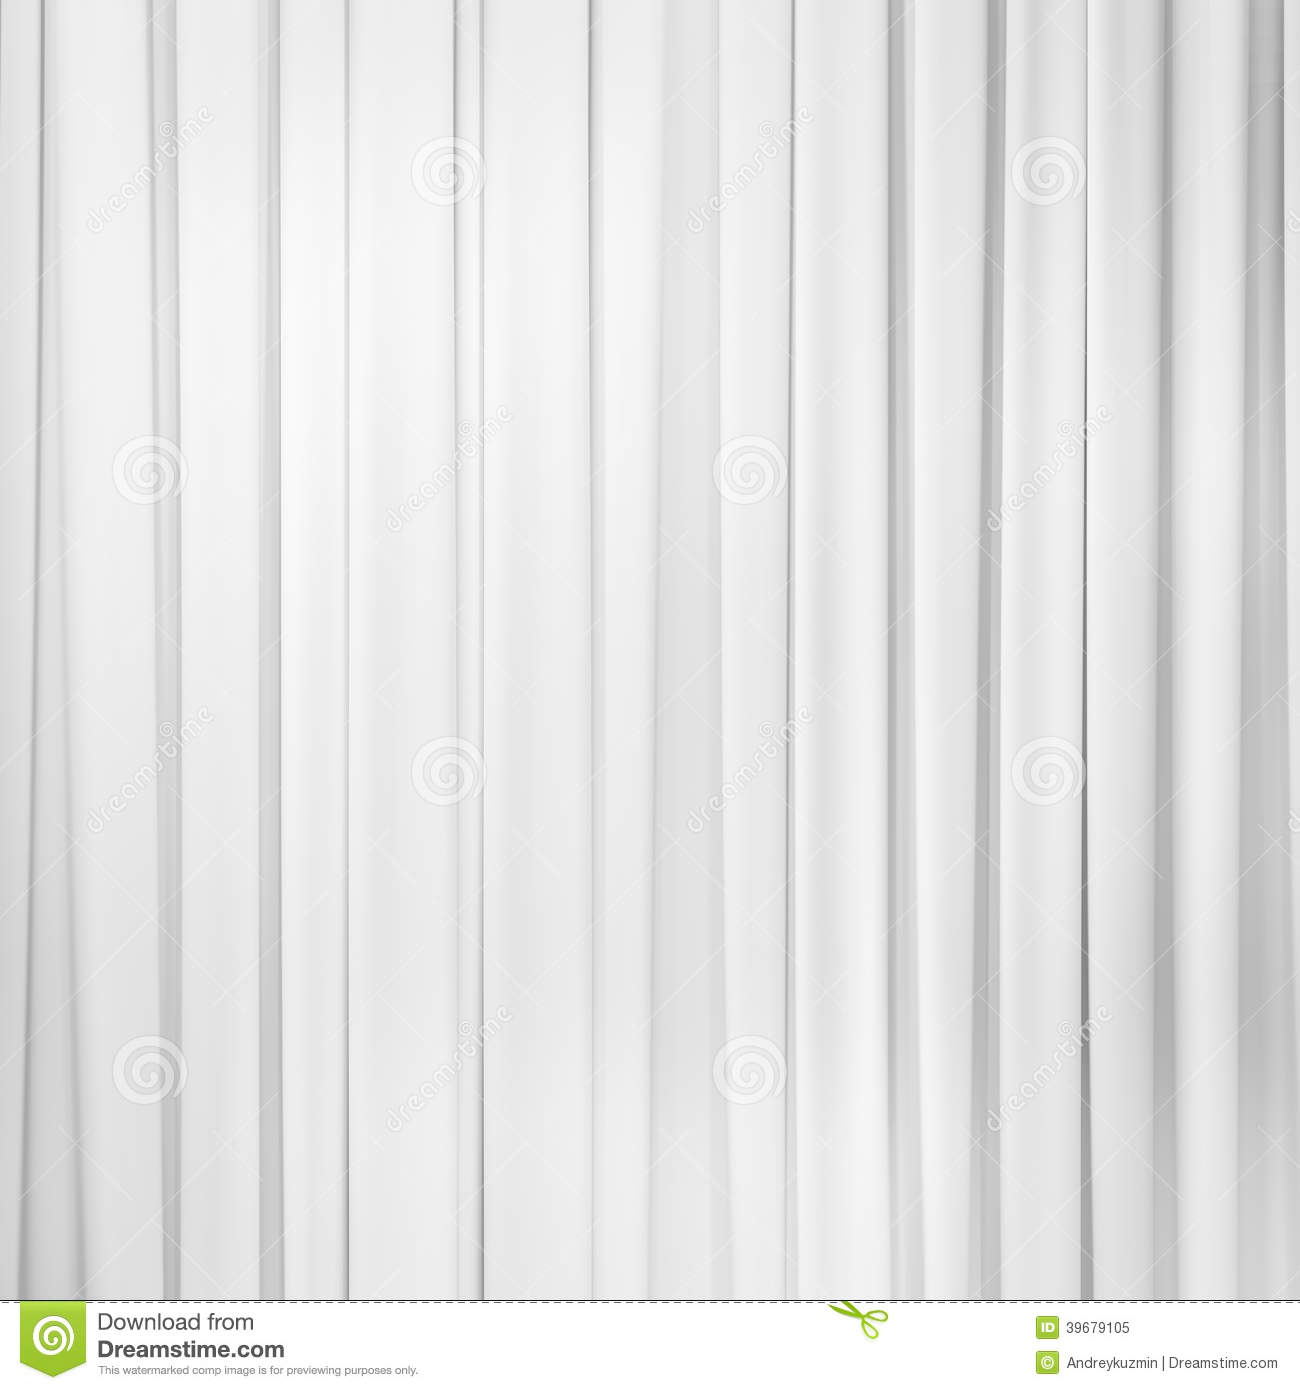 Free psd store red curtain background - White Curtain Background Stock Photo Image 39679105